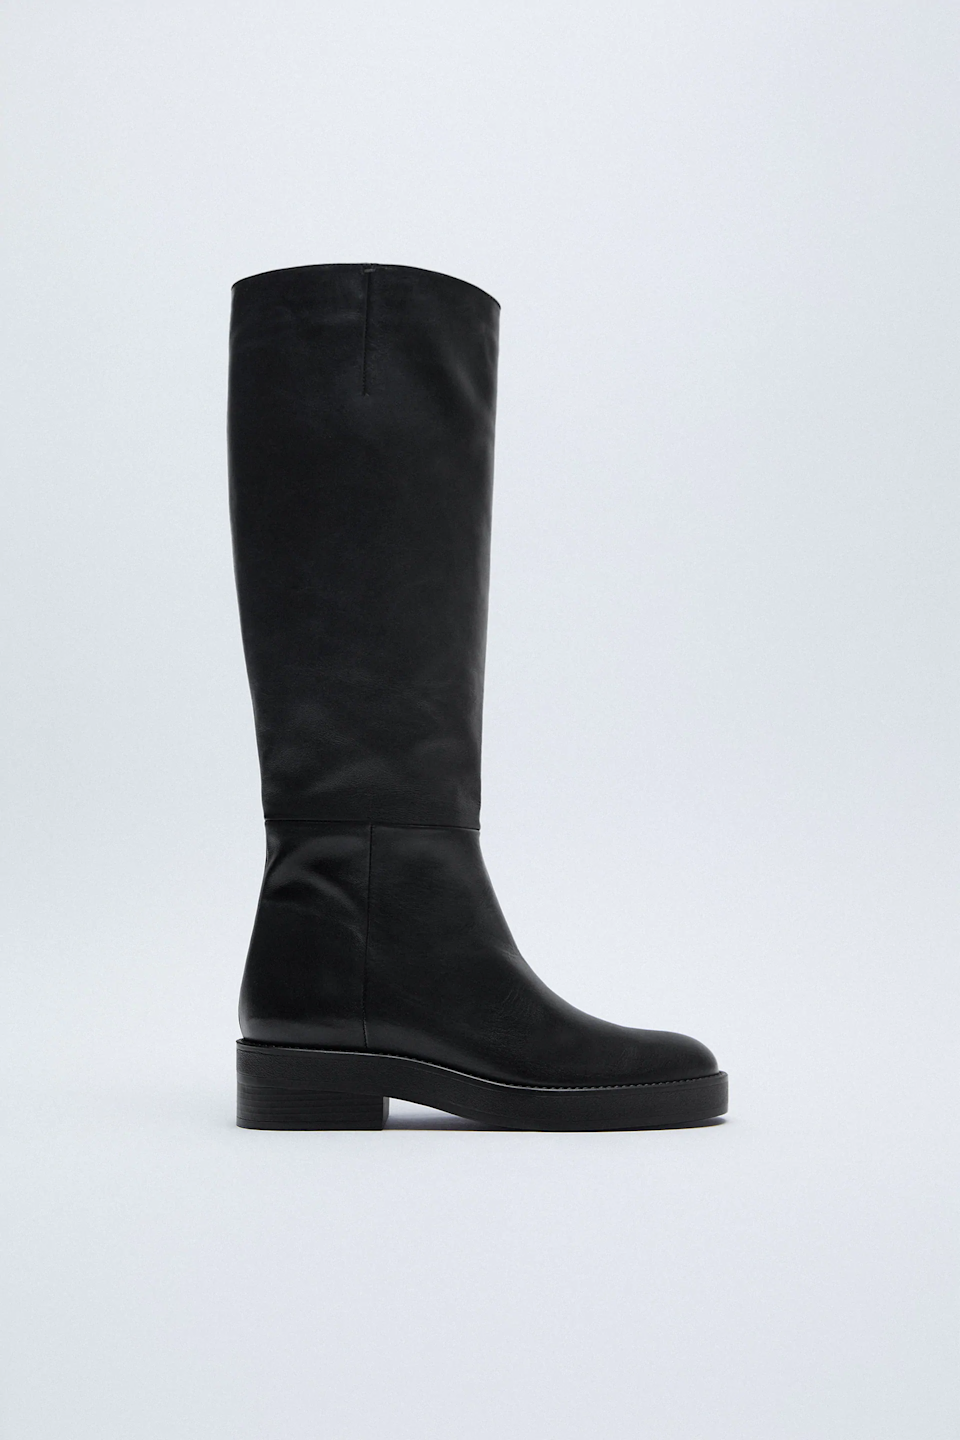 "There's no better gift than the one they've been eyeing for weeks.<br><br><strong>Zara</strong> Low Heeled Leather Tall Boots, $, available at <a href=""https://go.skimresources.com/?id=30283X879131&url=https%3A%2F%2Ffave.co%2F3nhmR9v"" rel=""nofollow noopener"" target=""_blank"" data-ylk=""slk:Zara"" class=""link rapid-noclick-resp"">Zara</a>"